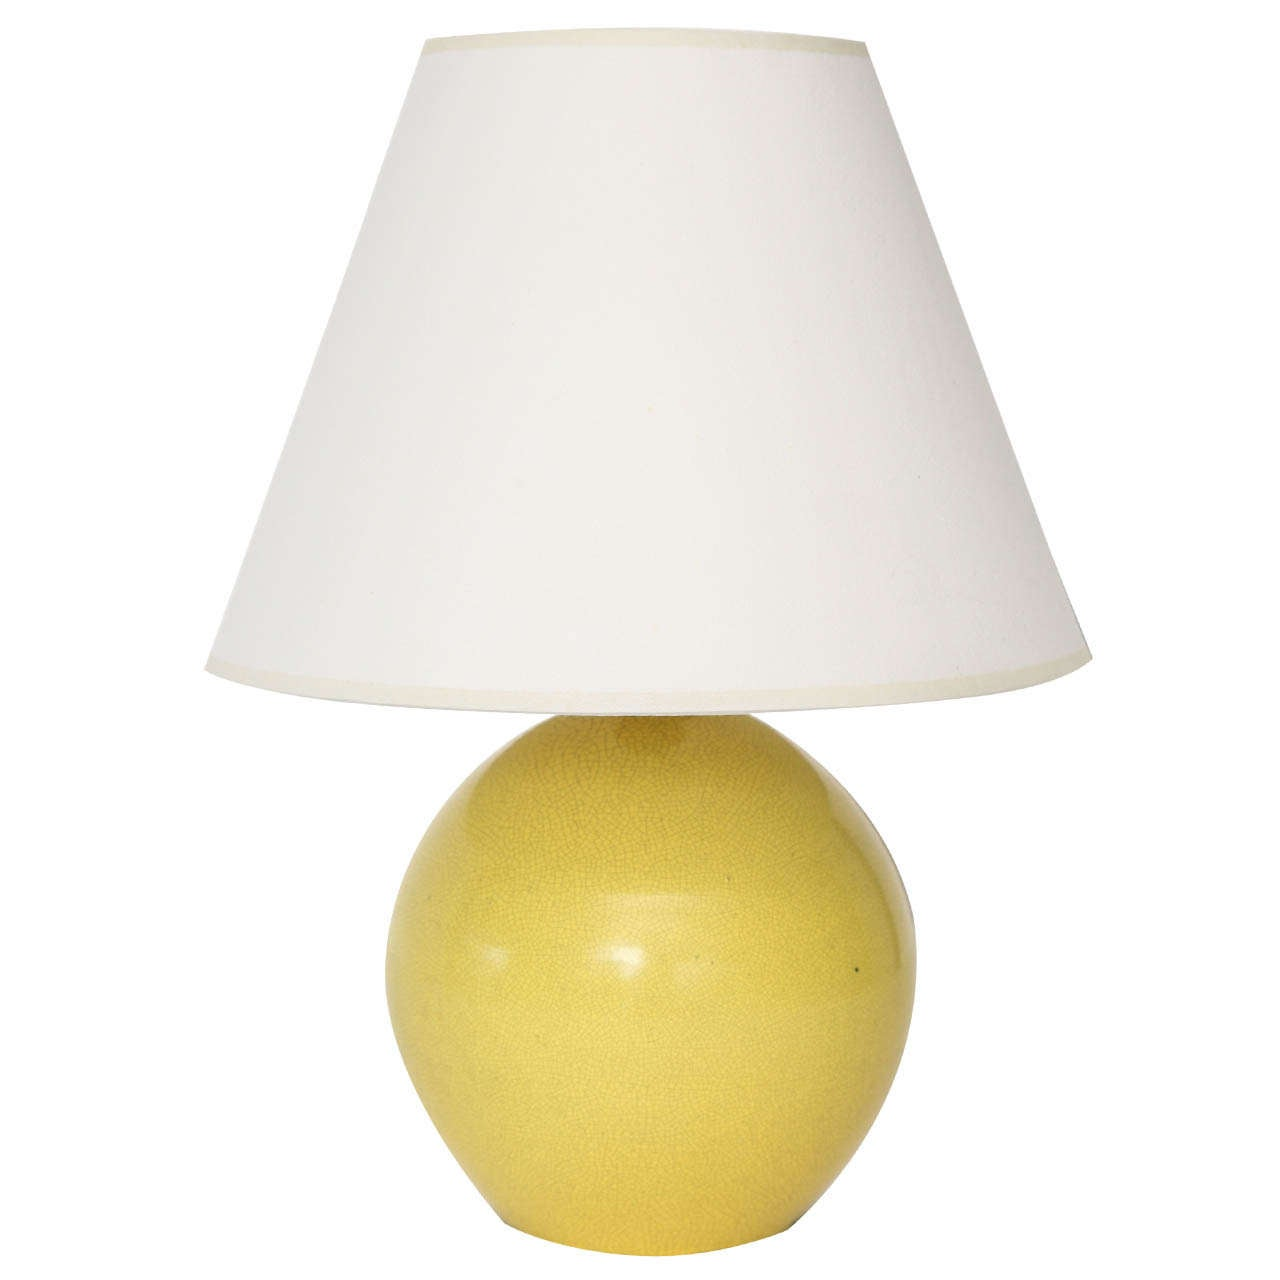 Small Table Lamp with Crackled Yellow Glaze at 1stdibs